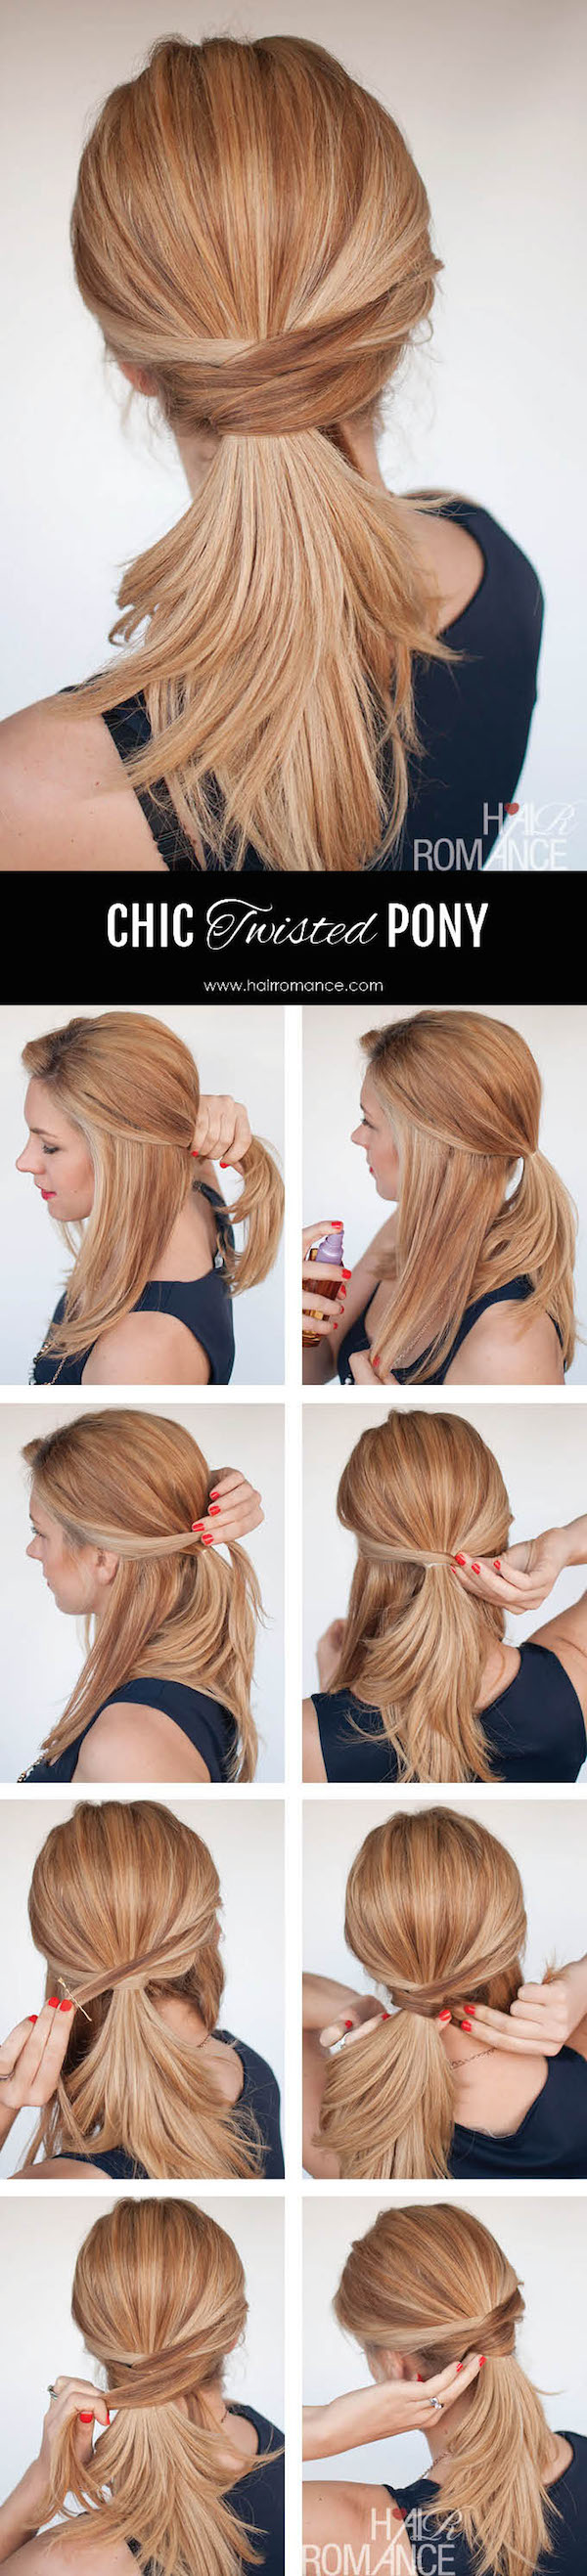 Hair-Romance-The-chic-twisted-ponytail-tutorial